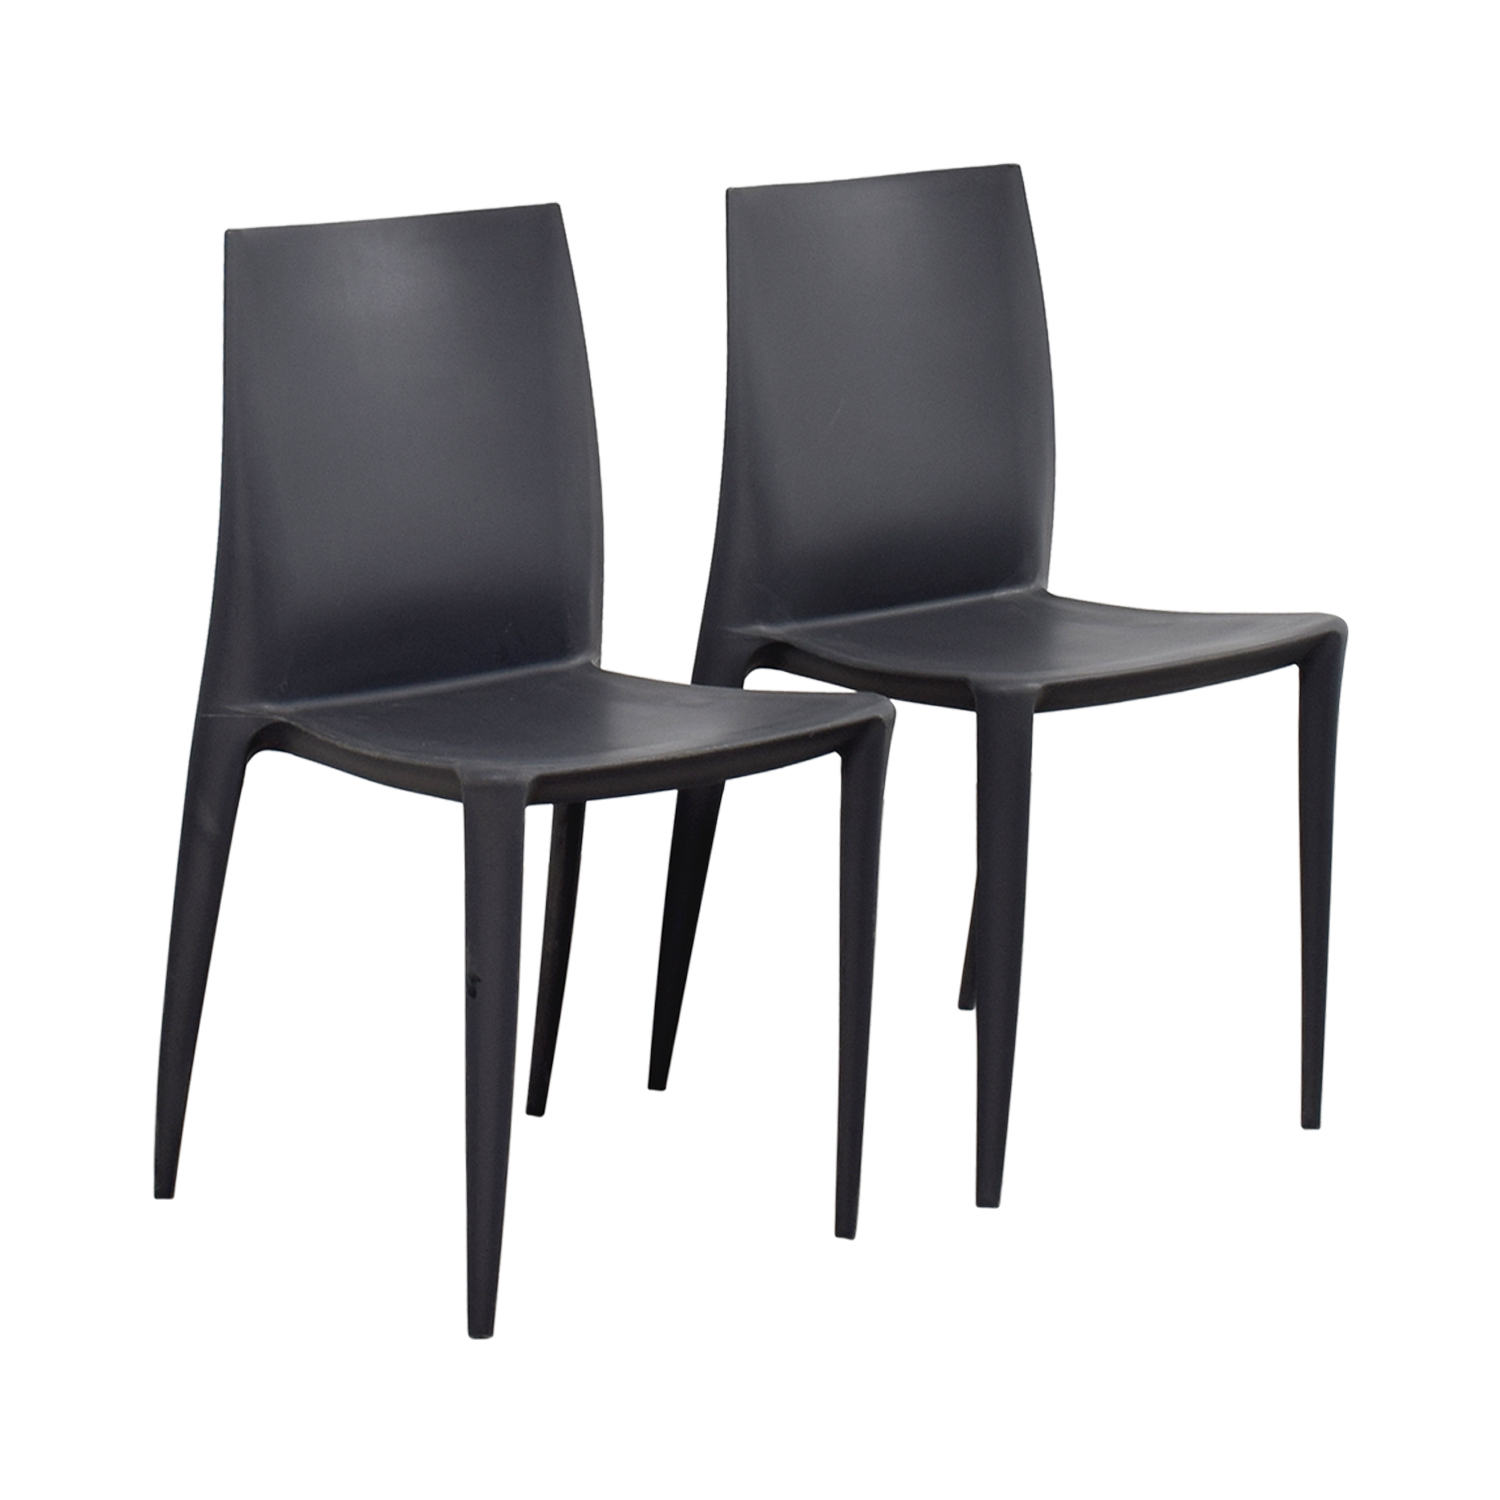 Arty LTD Arty Ltd Accent Chairs Chairs